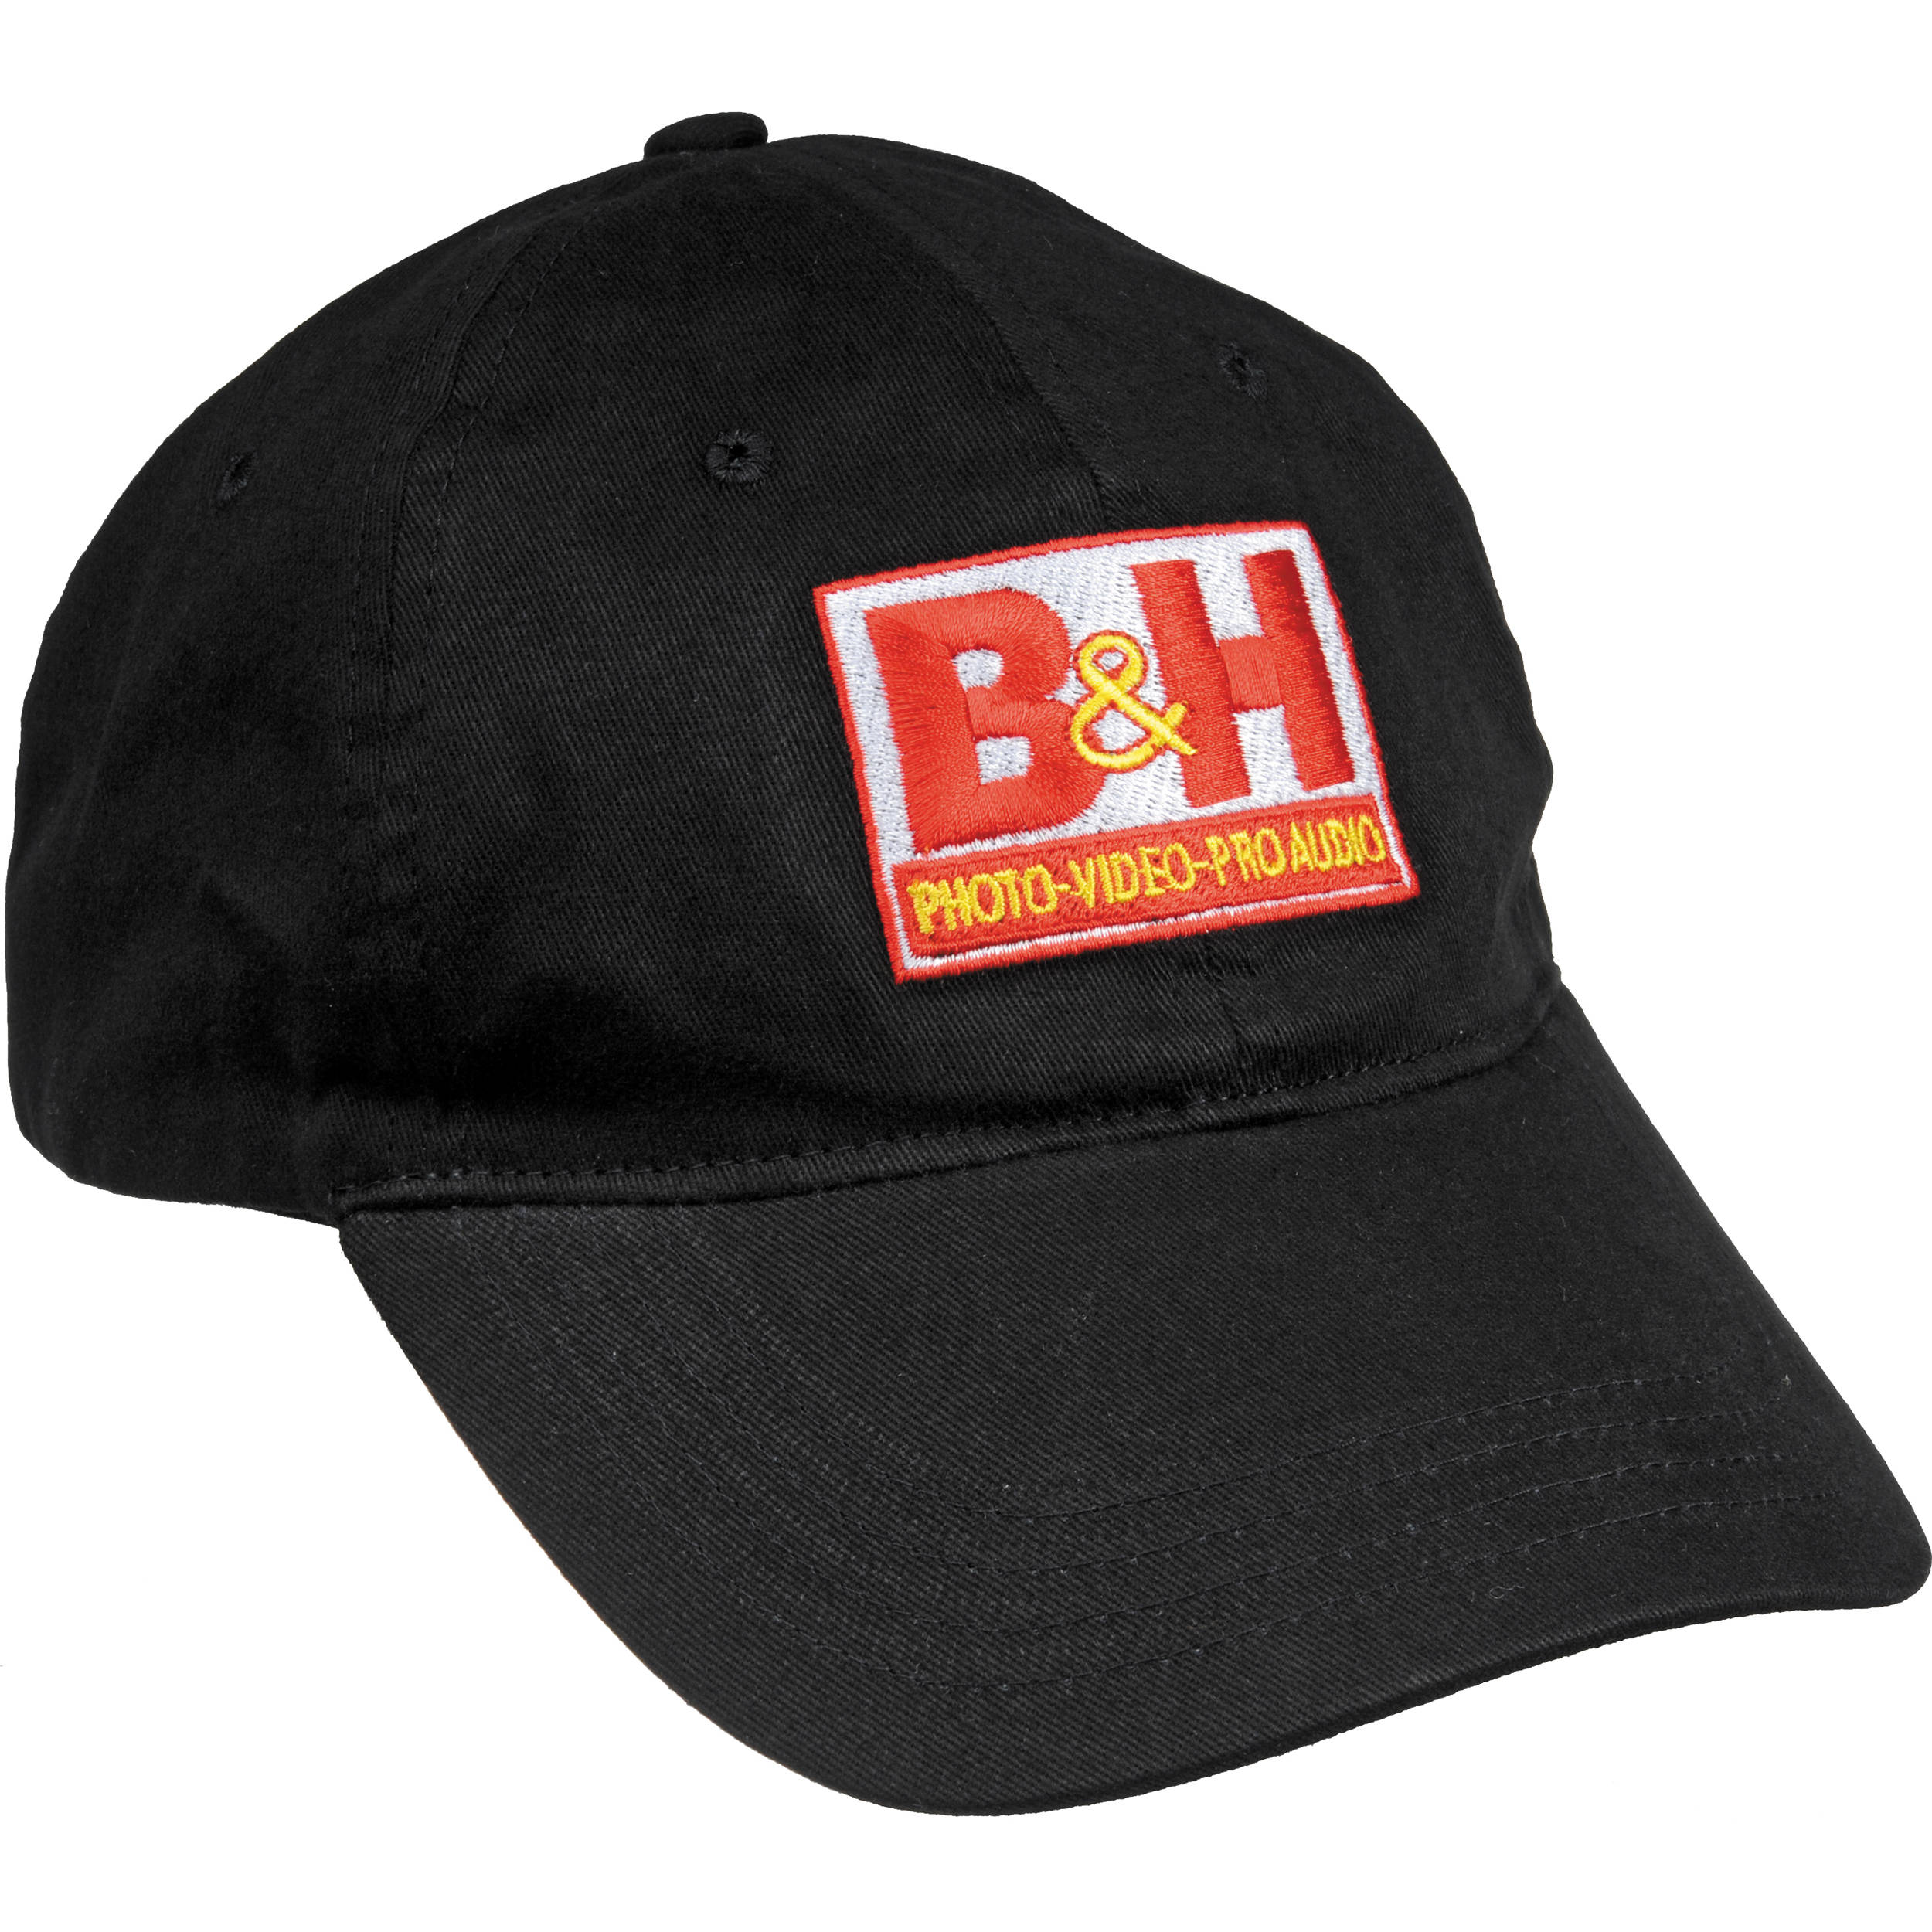 b h photo video logo baseball cap black bh cap b b h photo. Black Bedroom Furniture Sets. Home Design Ideas